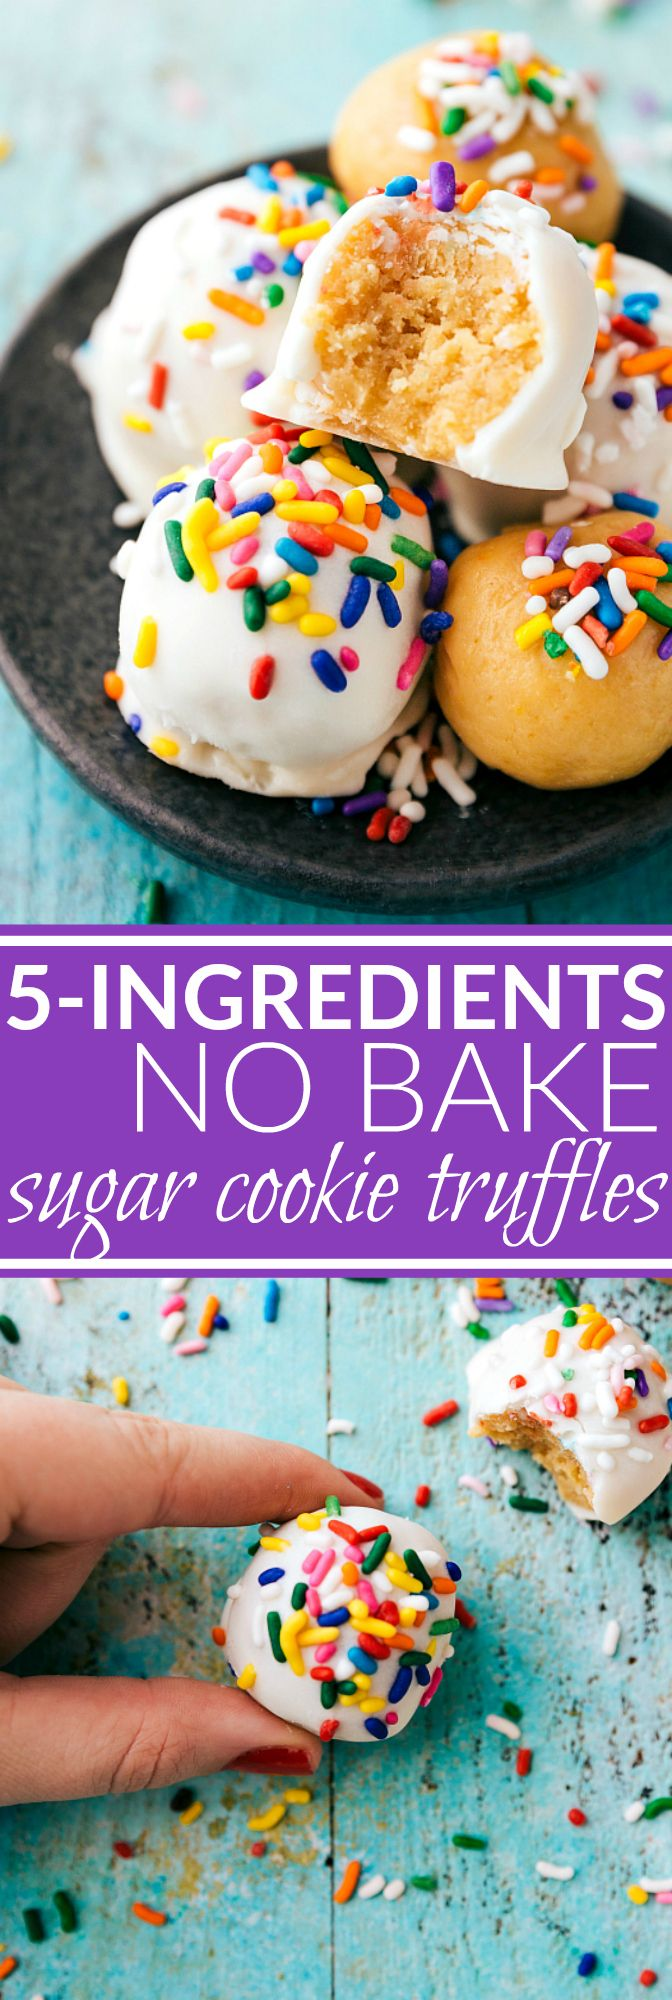 Simple sugar cookie truffles without raw eggs or flour that require no baking and come together in 15 minutes or less! Only FIVE ingredients! via chelseasmessyapron.com